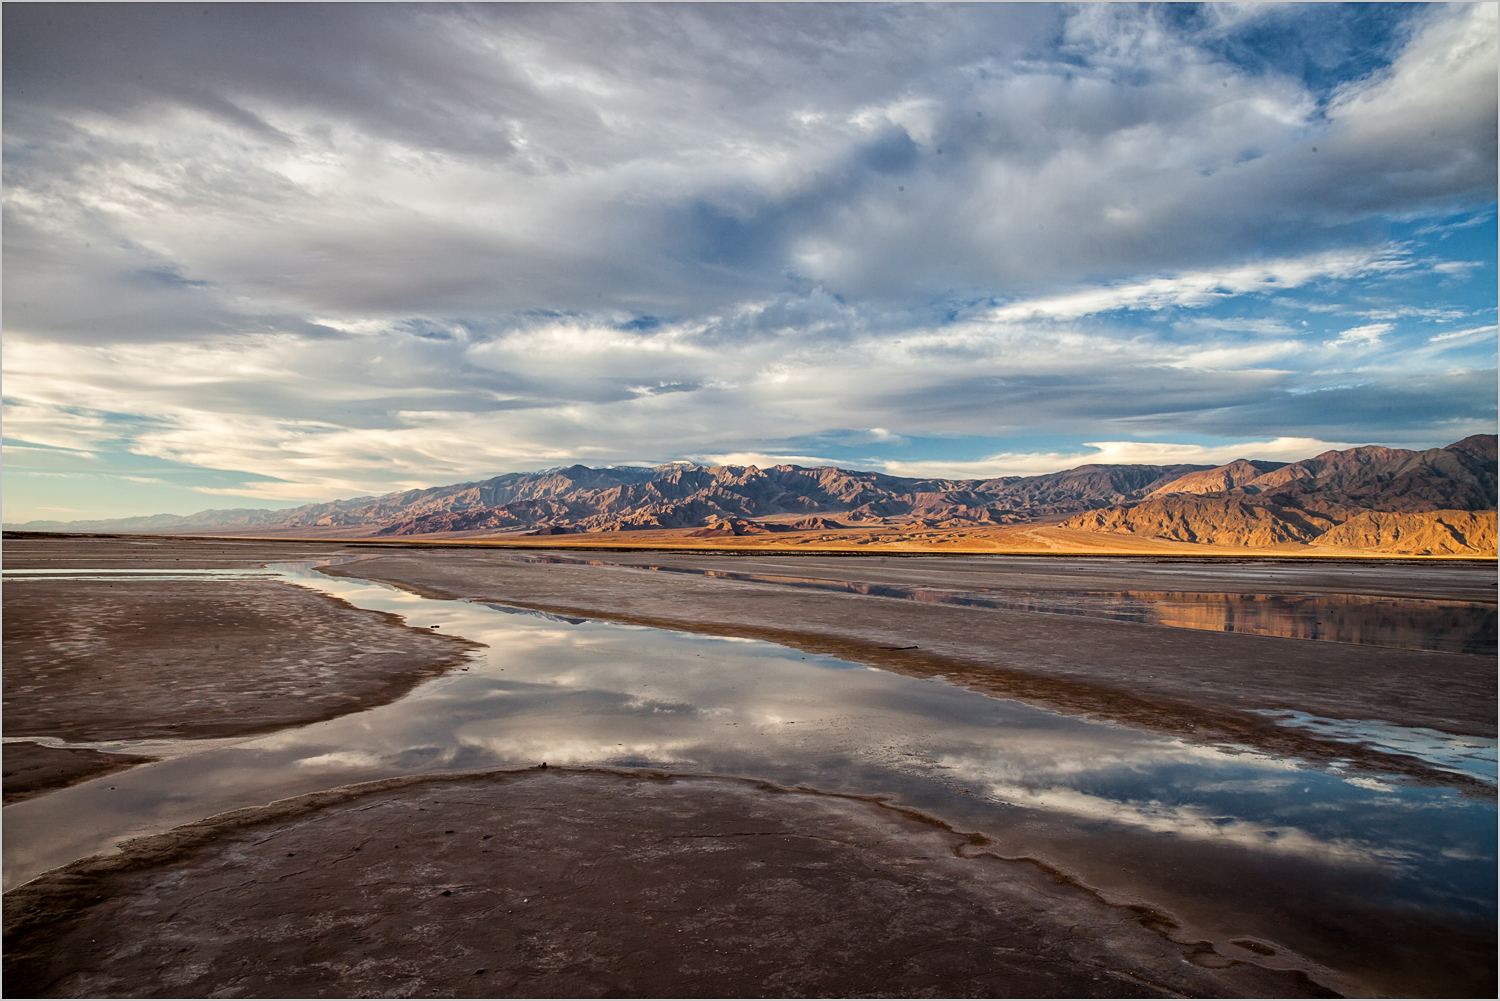 Rivulets on Death Valley salt flats after rain © Howard Grill